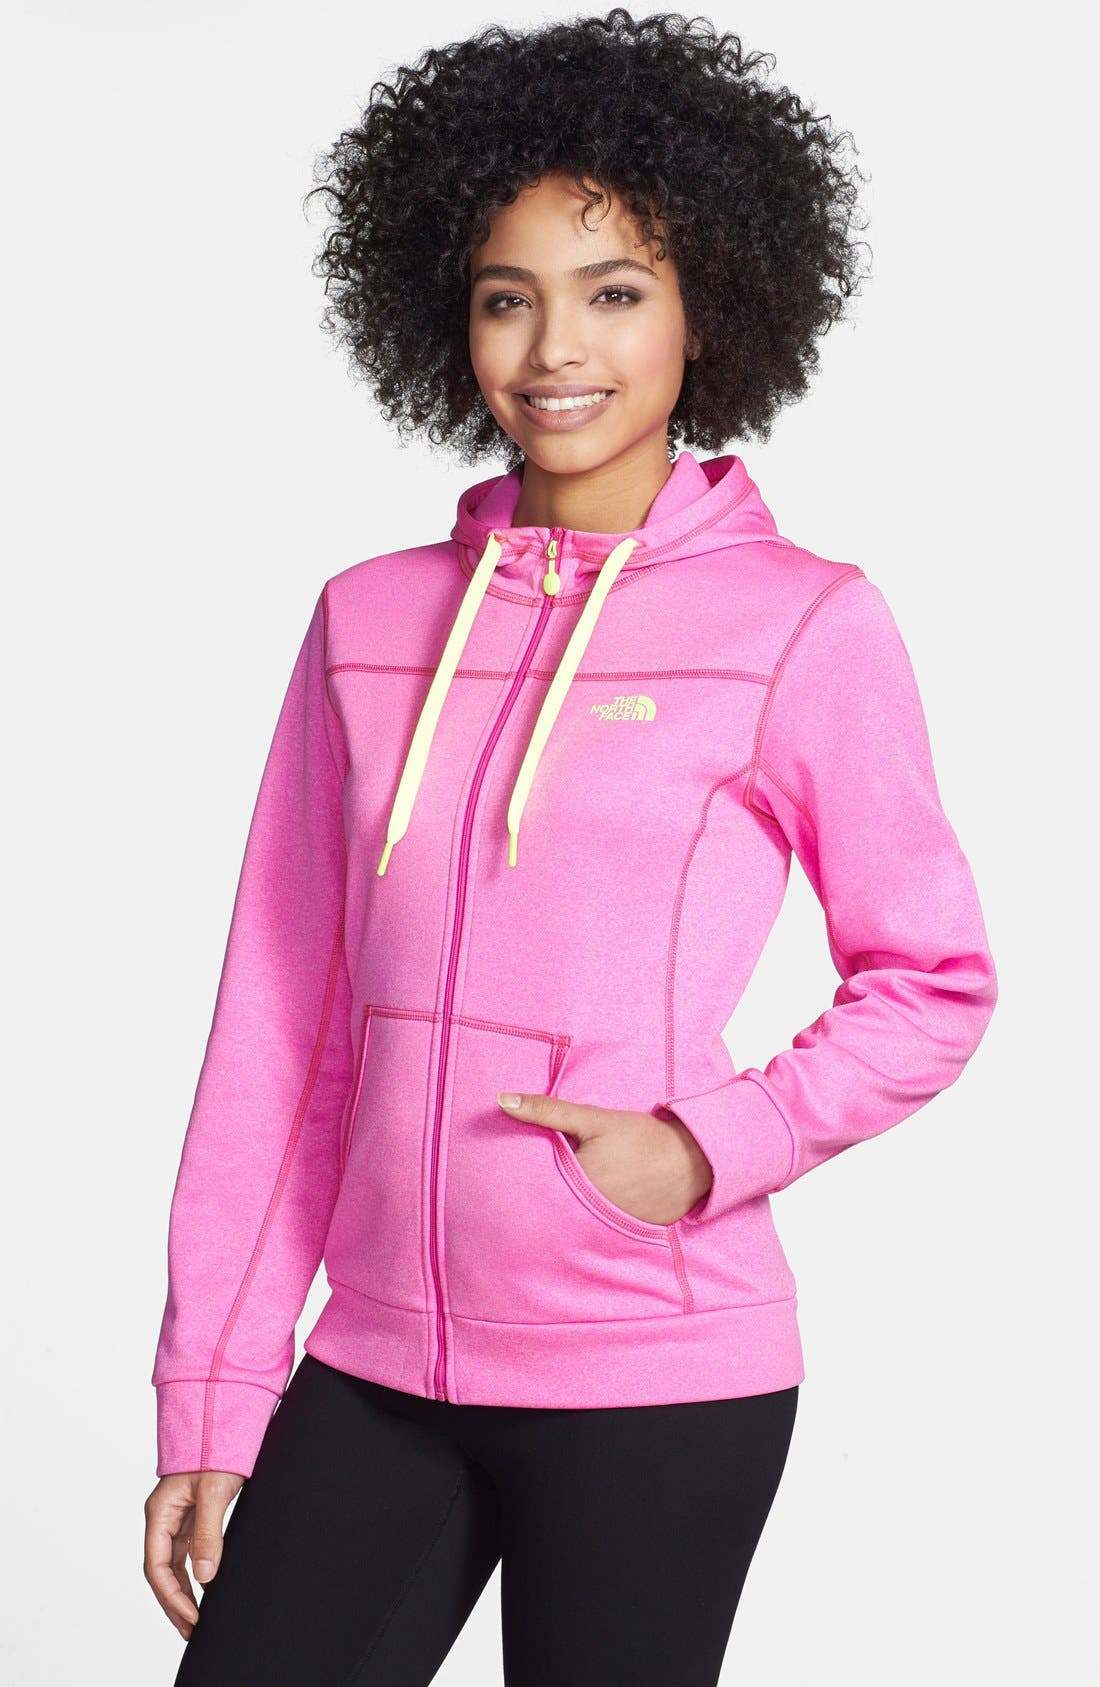 Alternate Image 1 Selected - The North Face 'Fave-Our-Ite' Full Zip Hoodie